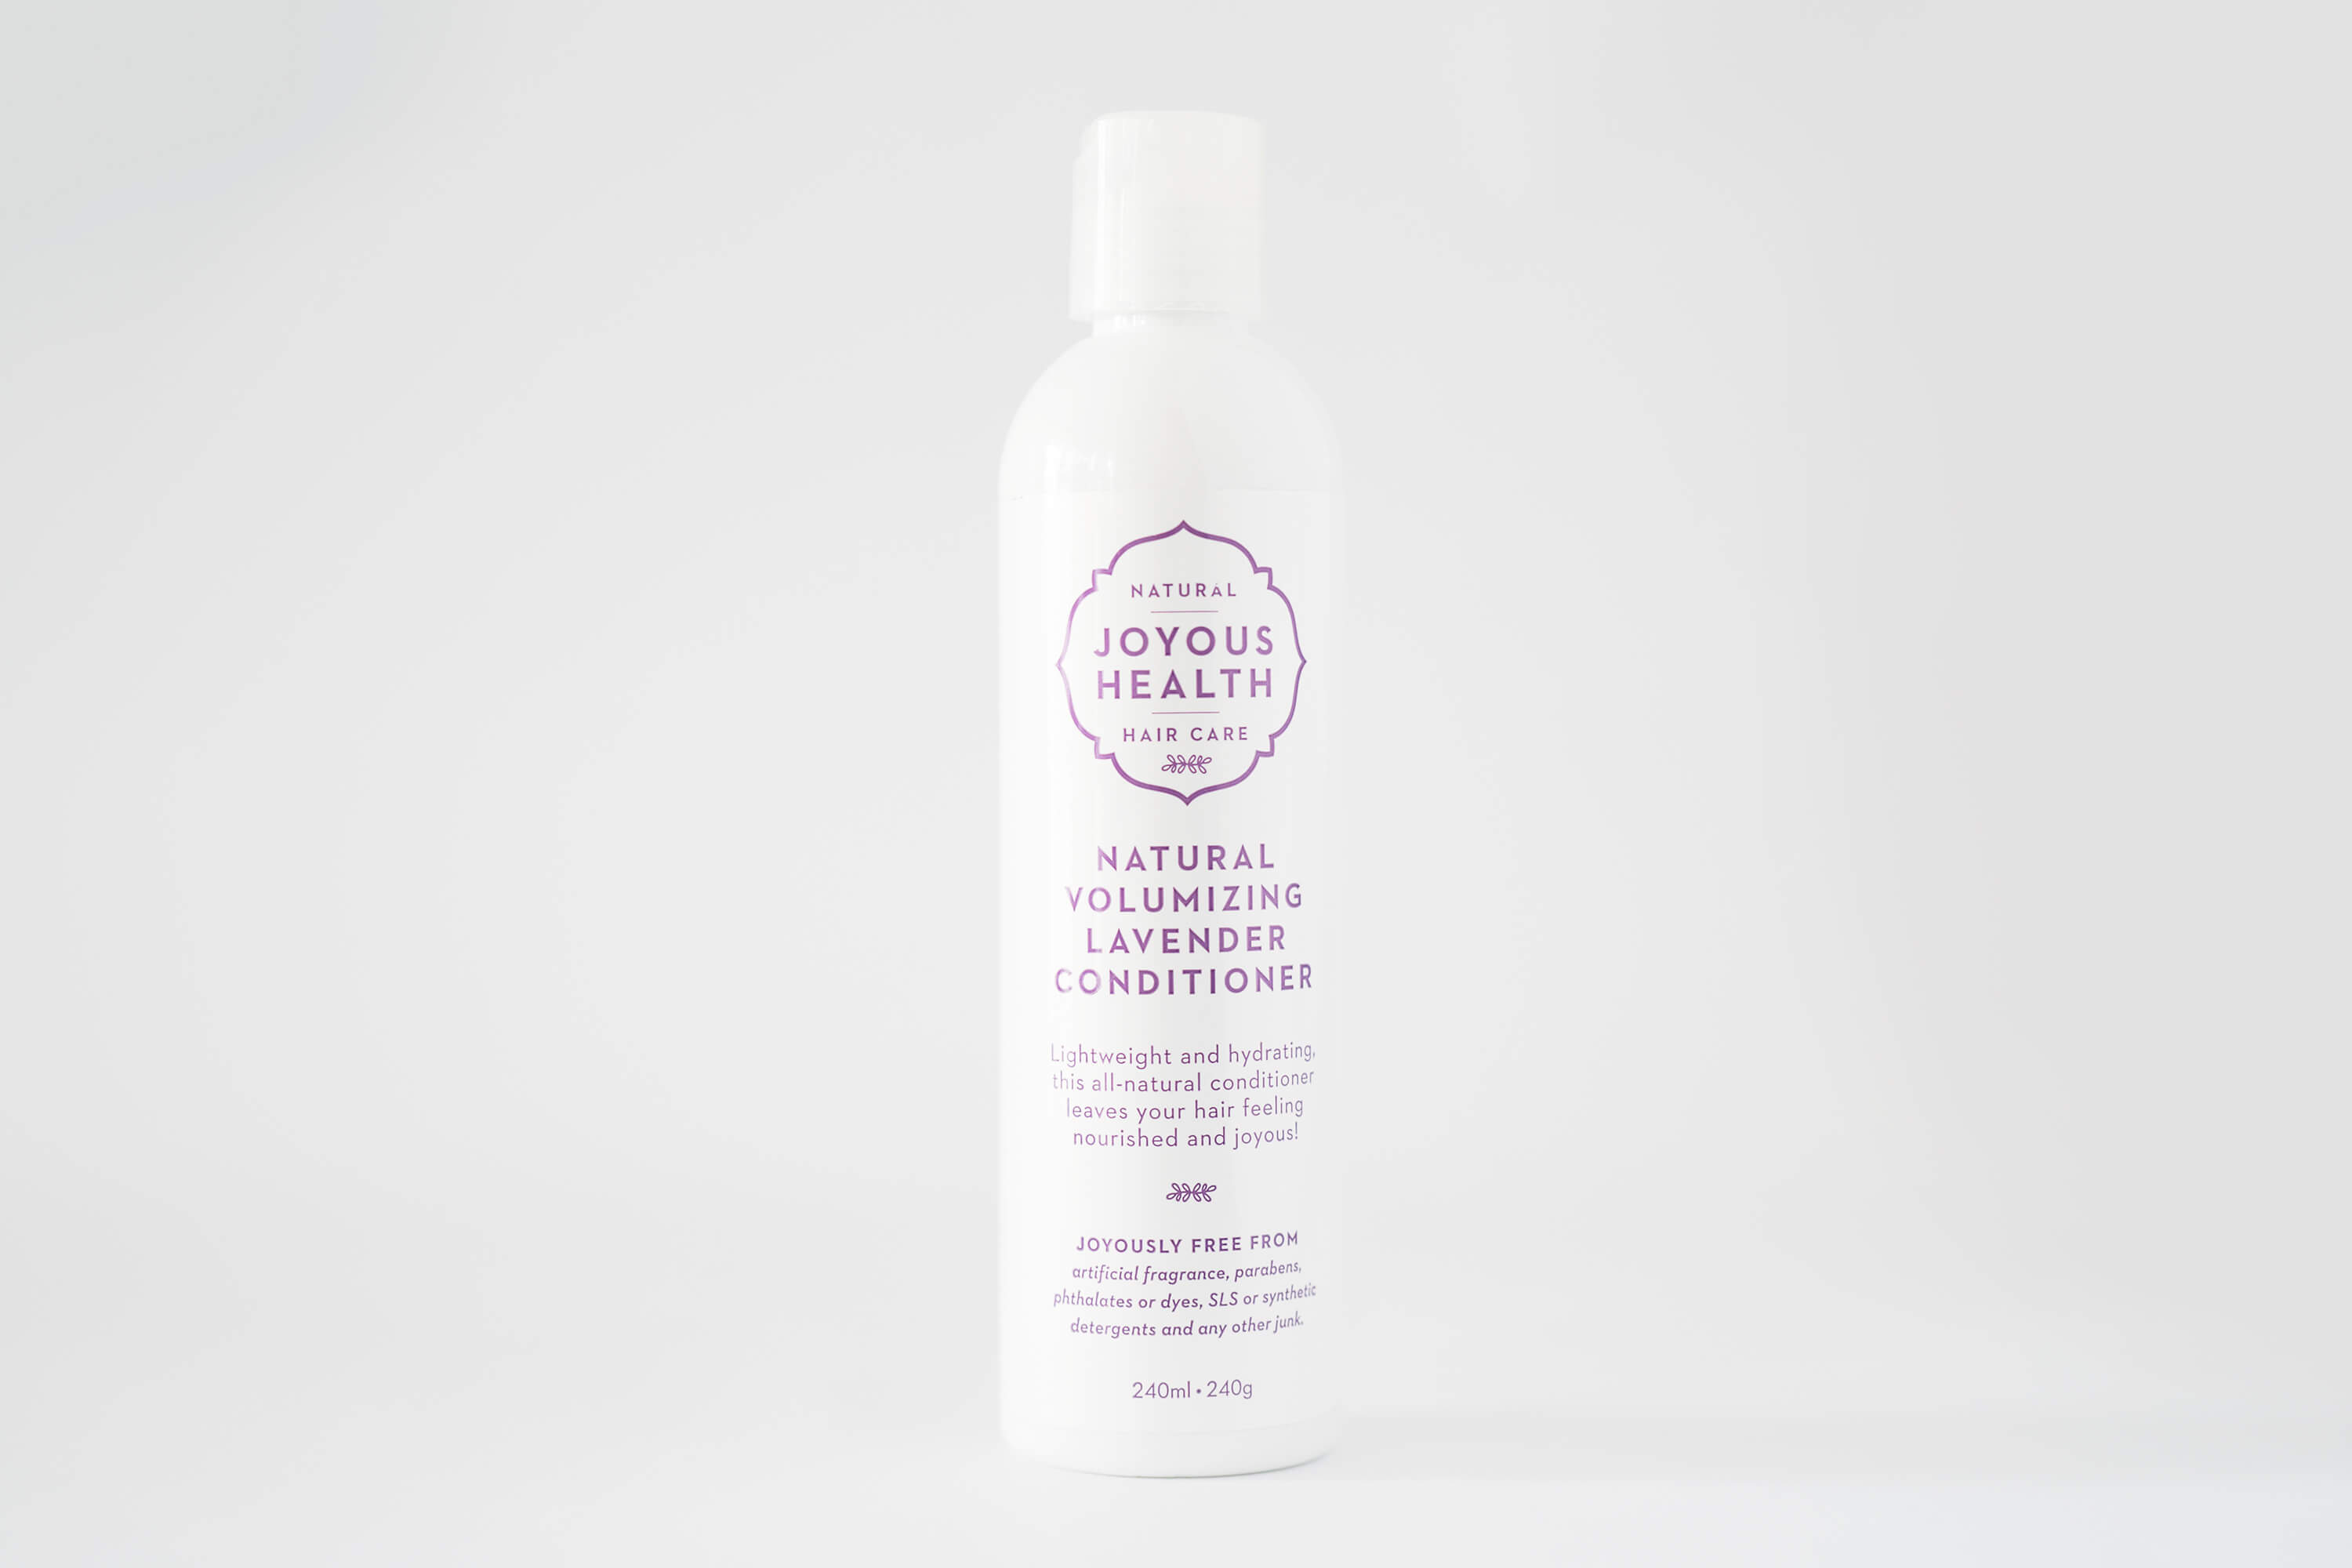 The Natural Shampoo Conditioner To Use If You Want Healthy Hair Gieve Eucalyptus Organic Lavender Extract Rosemary Leaf Oil Aloe Barbadensis Pisum Sativum Pea Peptide Can Also Find Ingredients Below In Our